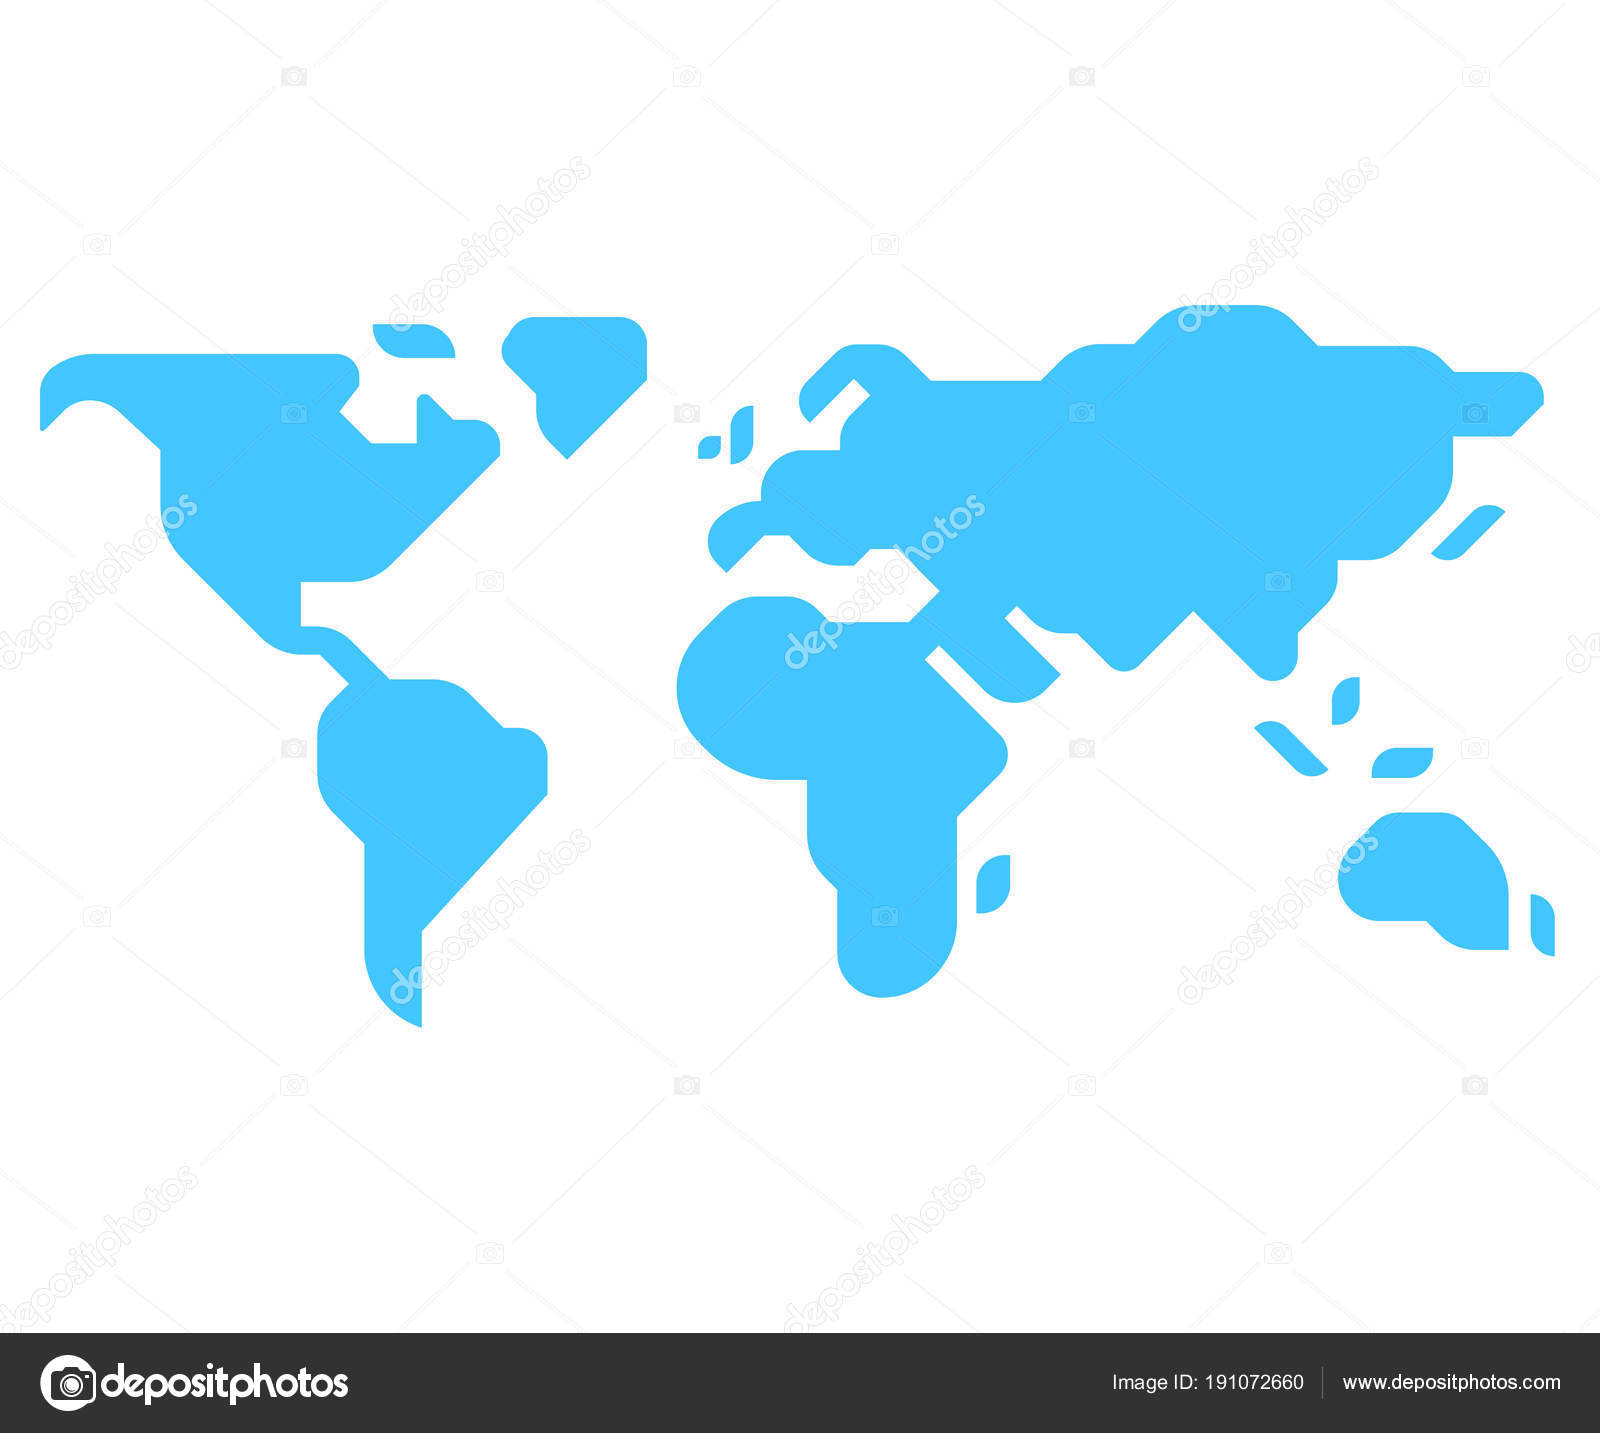 Minimal style world map stock vector sudowoodo 191072660 simple stylized world map silhouette in modern minimal style isolated vector illustration vector by sudowoodo gumiabroncs Image collections